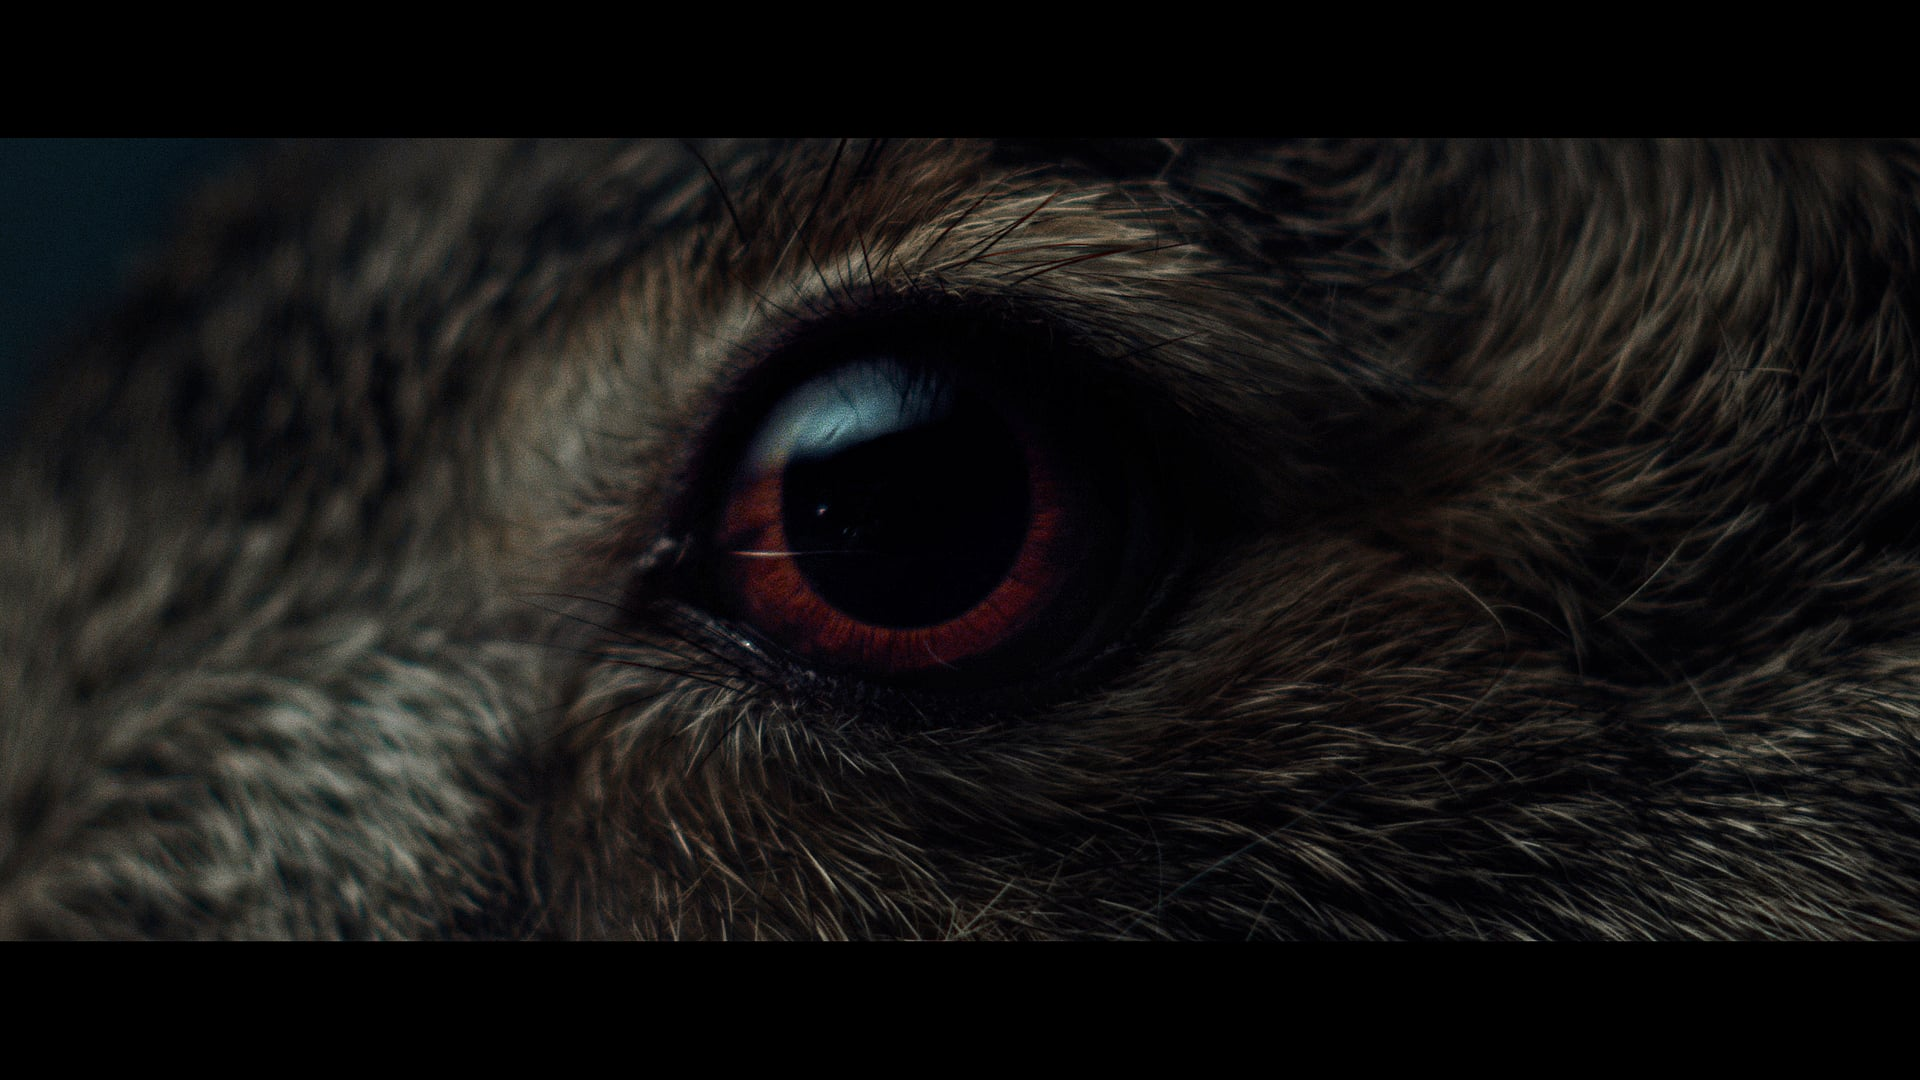 A Visual Ode to A Hare in the Woods - featuring Massimo Bottura